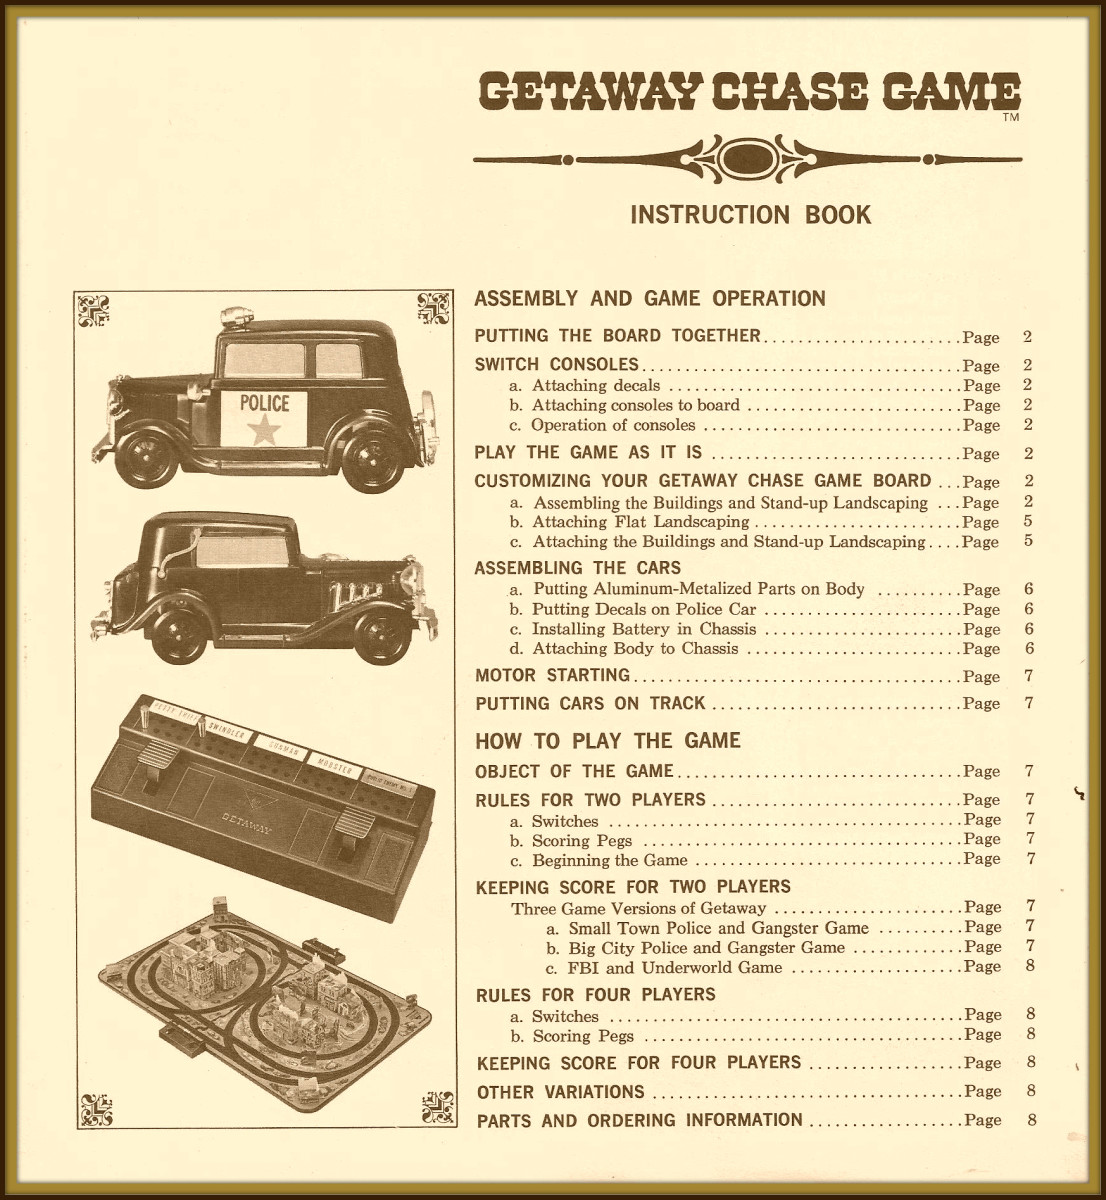 Instruction Book for the Getaway Chase Game was very cool. The game was made by the American  Machine and Foundry Company AMF  WEN-MAG Division, 11500 Tennessee Avenue, Los Angeles, California 90064